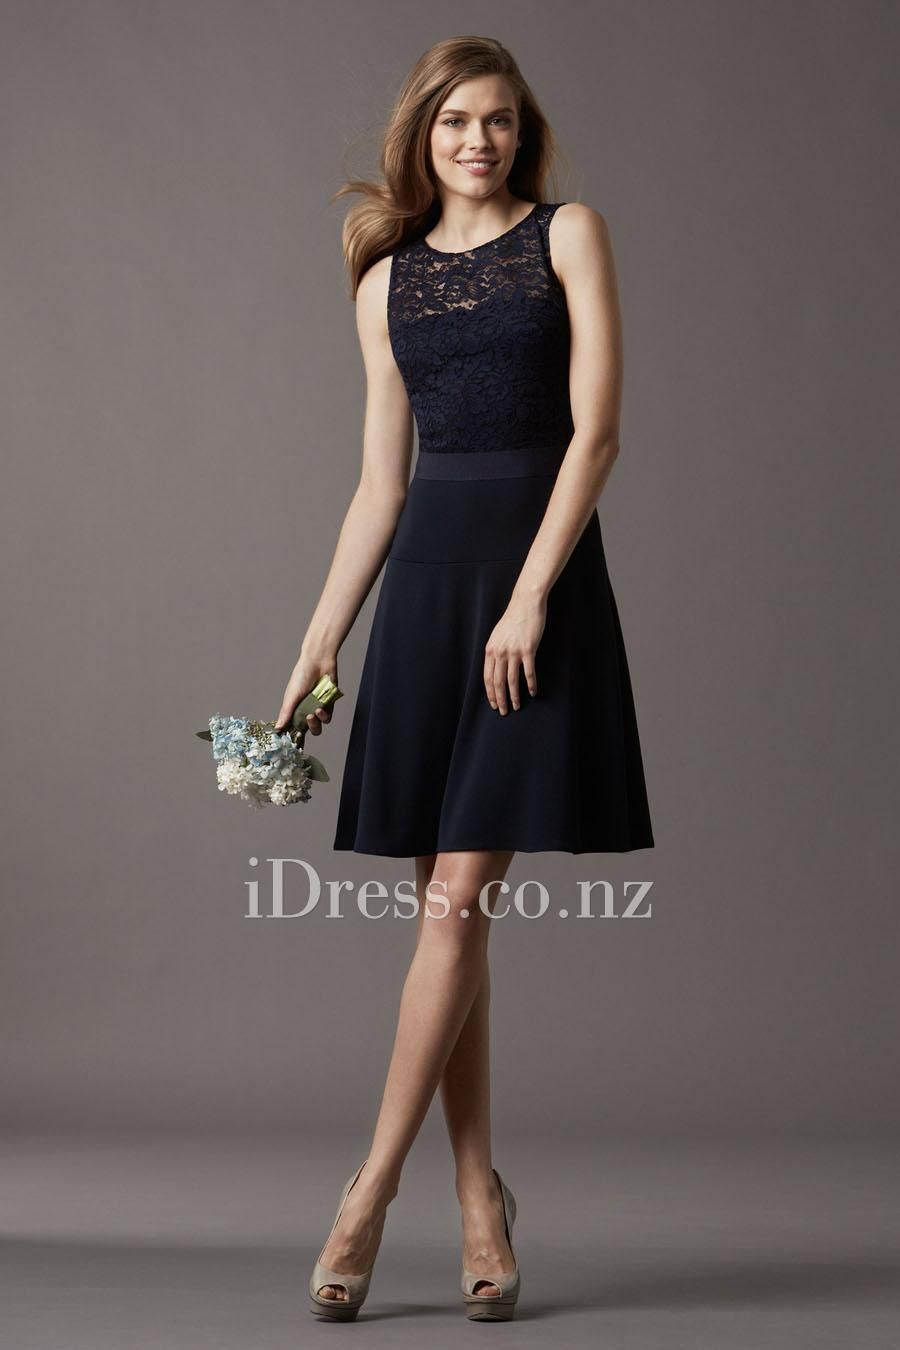 Midnight blue lace jewel neck sleeveless bridesmaid dress idress midnight blue lace jewel neck sleeveless bridesmaid dress idress ombrellifo Choice Image